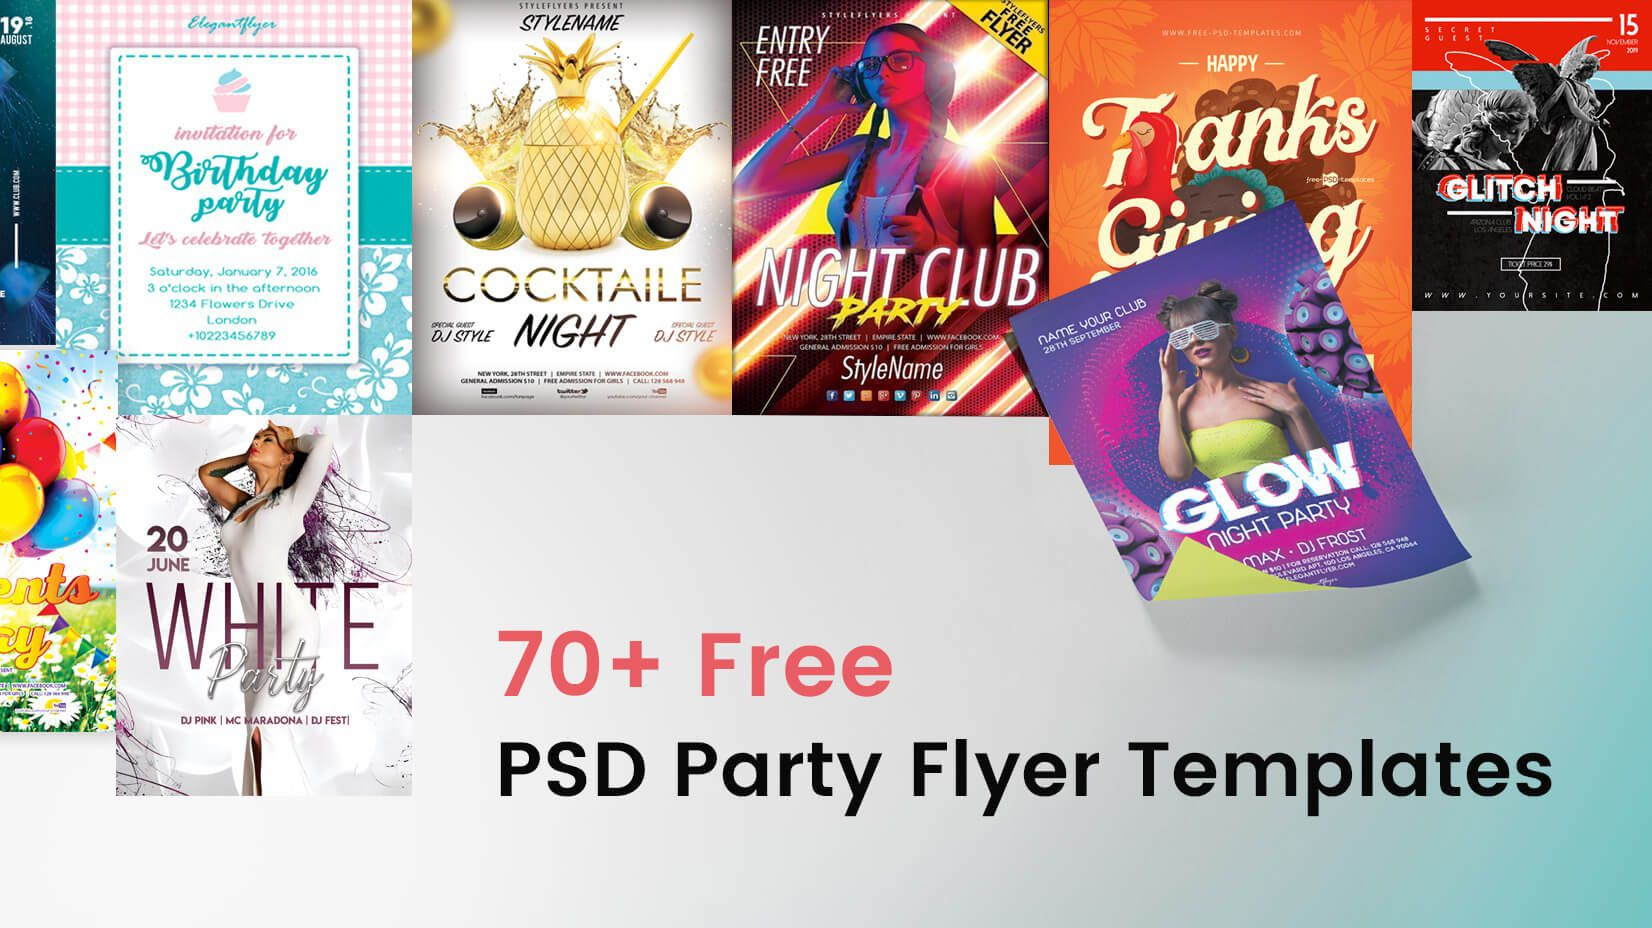 008 Impressive Free Printable Event Flyer Template High Resolution  Templates ChurchFull